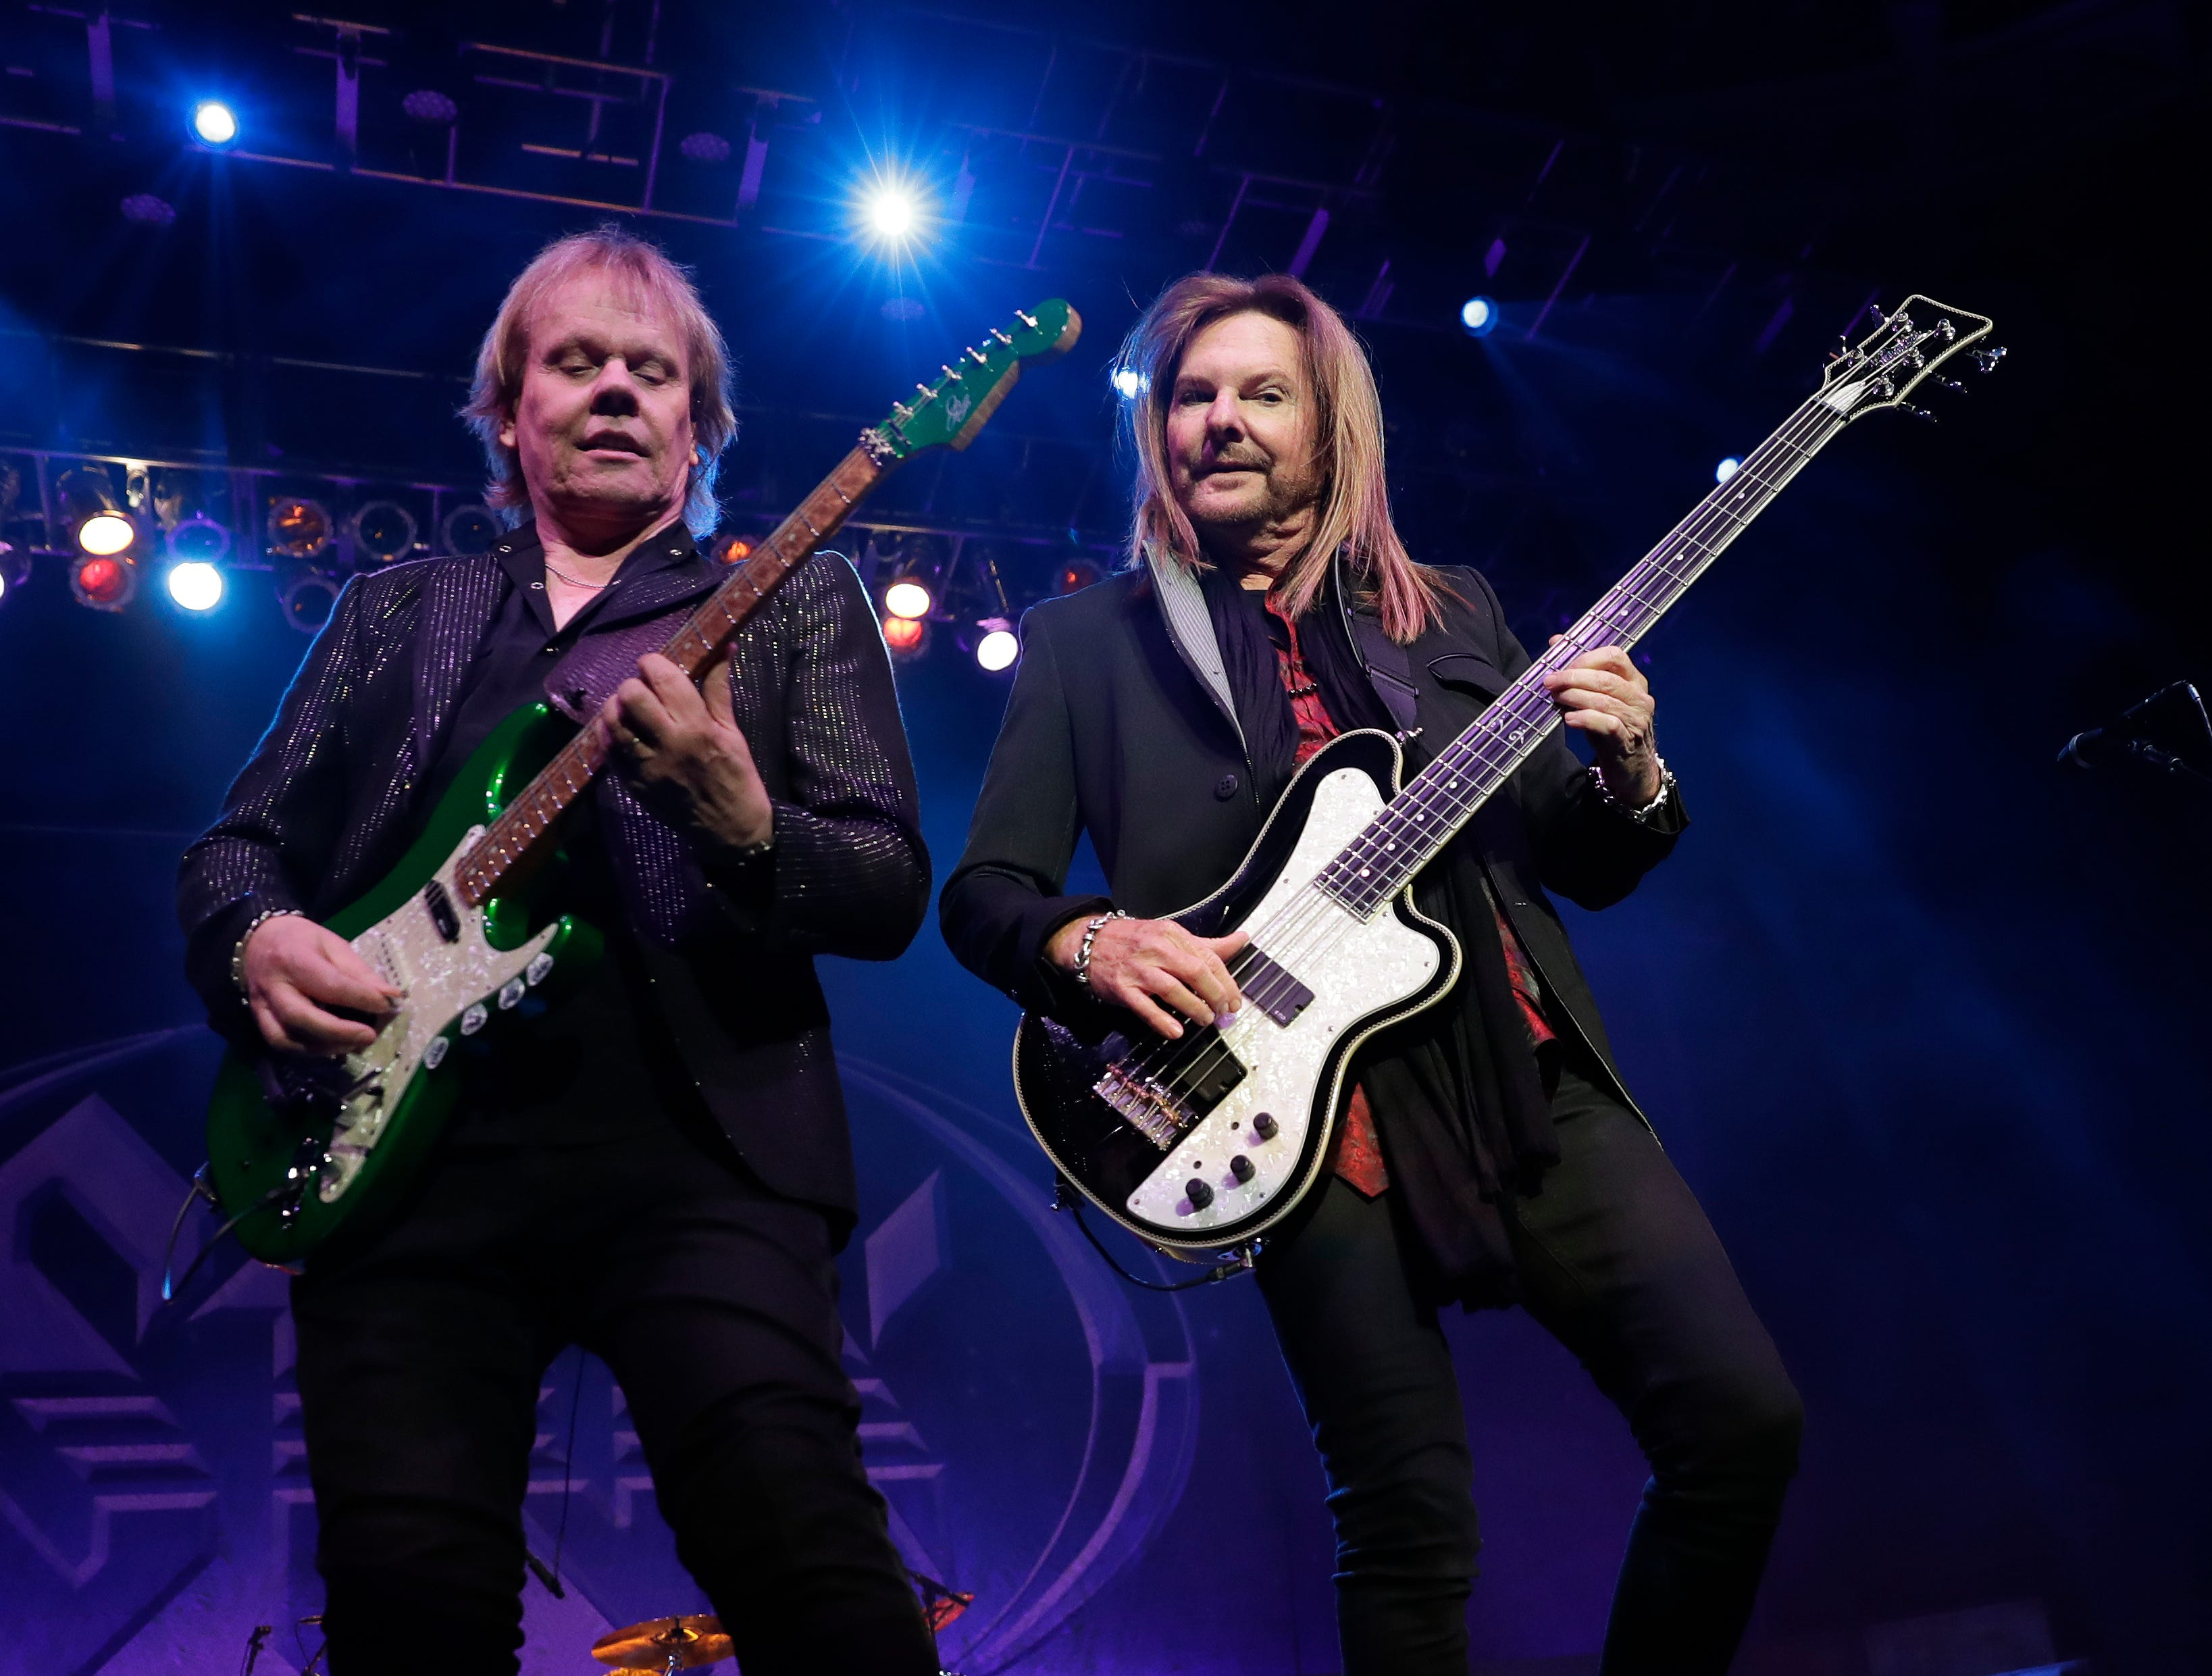 Styx band members James Young and Ricky Phillips perform Dec. 29, 2018 at the Resch Center in Ashwaubenon, Wis.